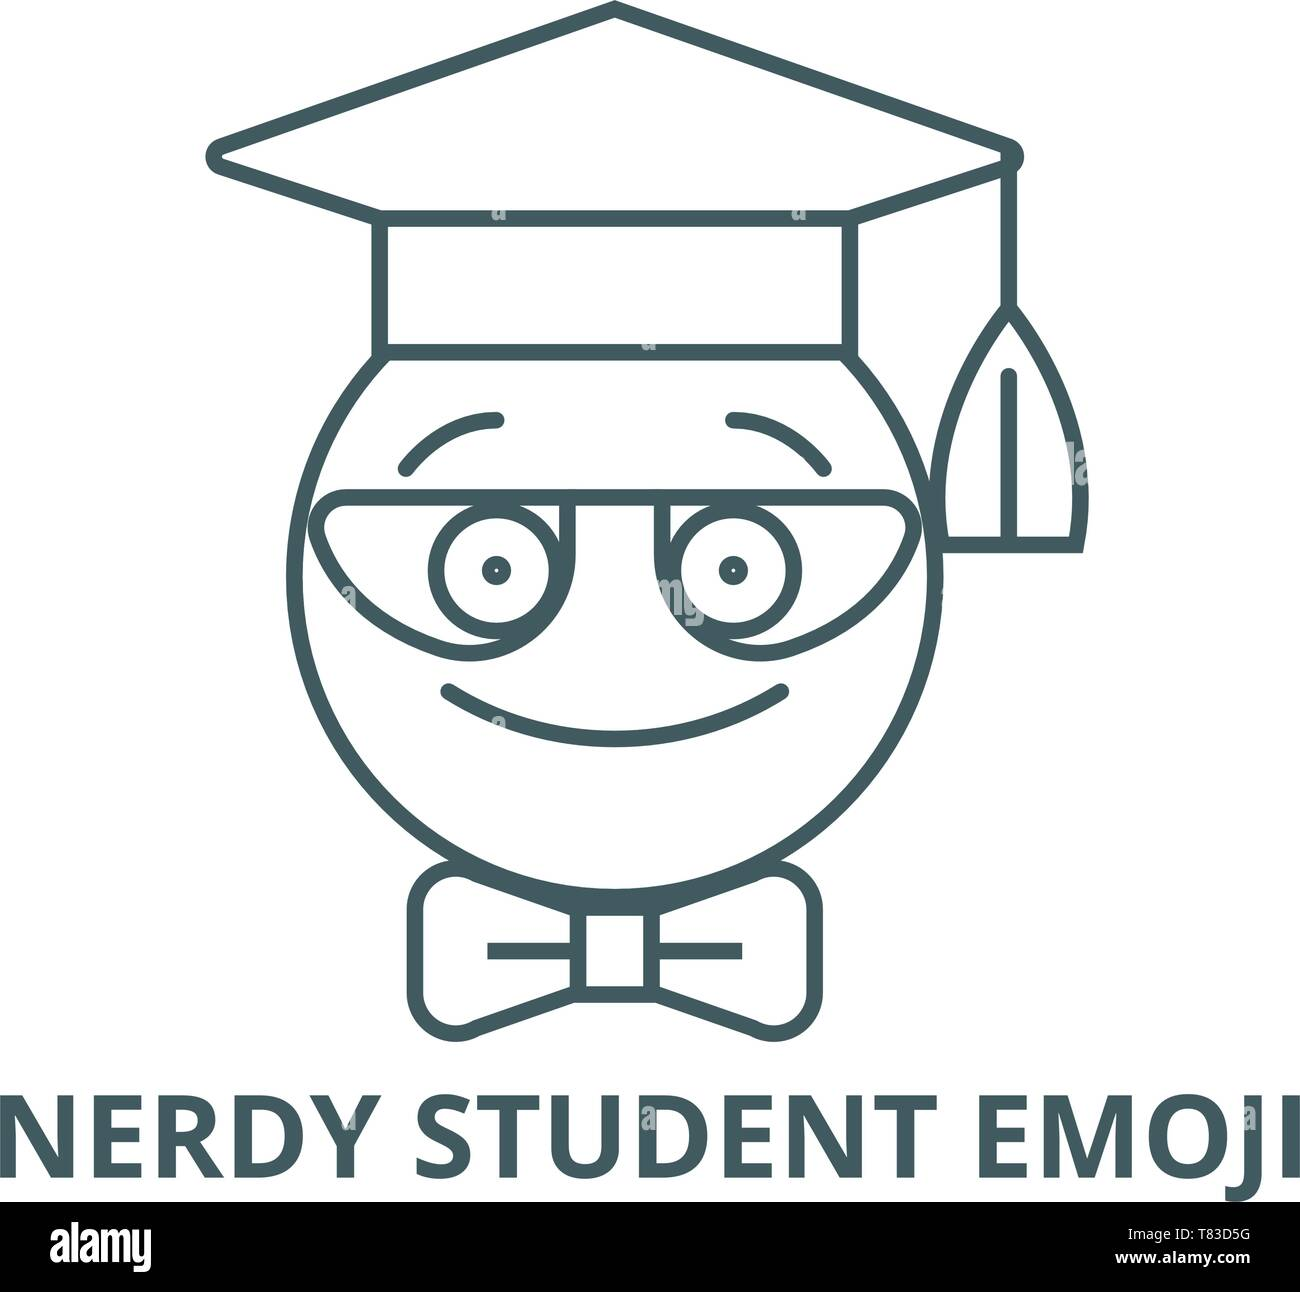 Nerdy student emoji vector line icon, linear concept, outline sign, symbol - Stock Image